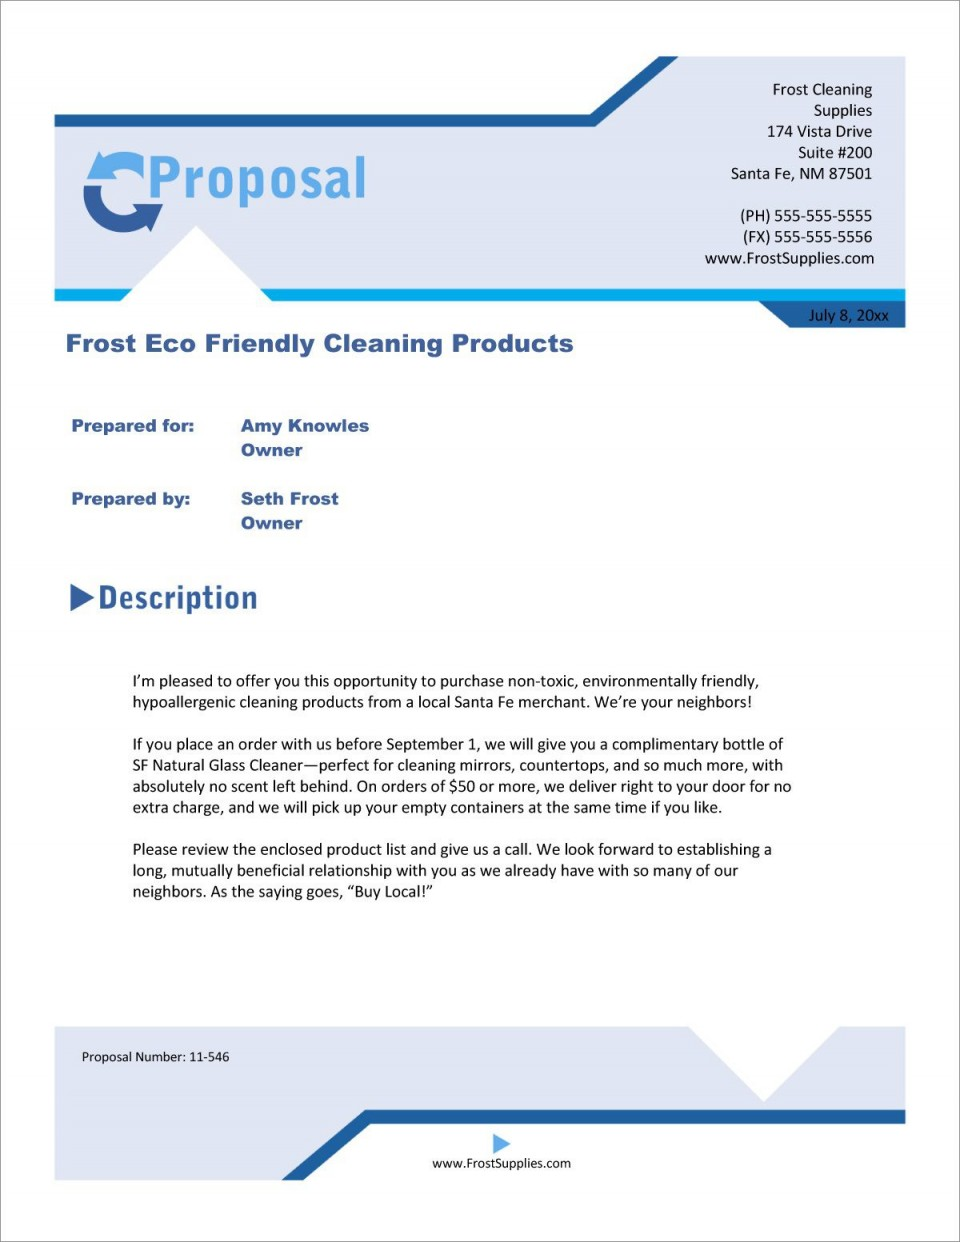 003 Staggering Free Cleaning Proposal Template High Definition  Doc Office Bid960